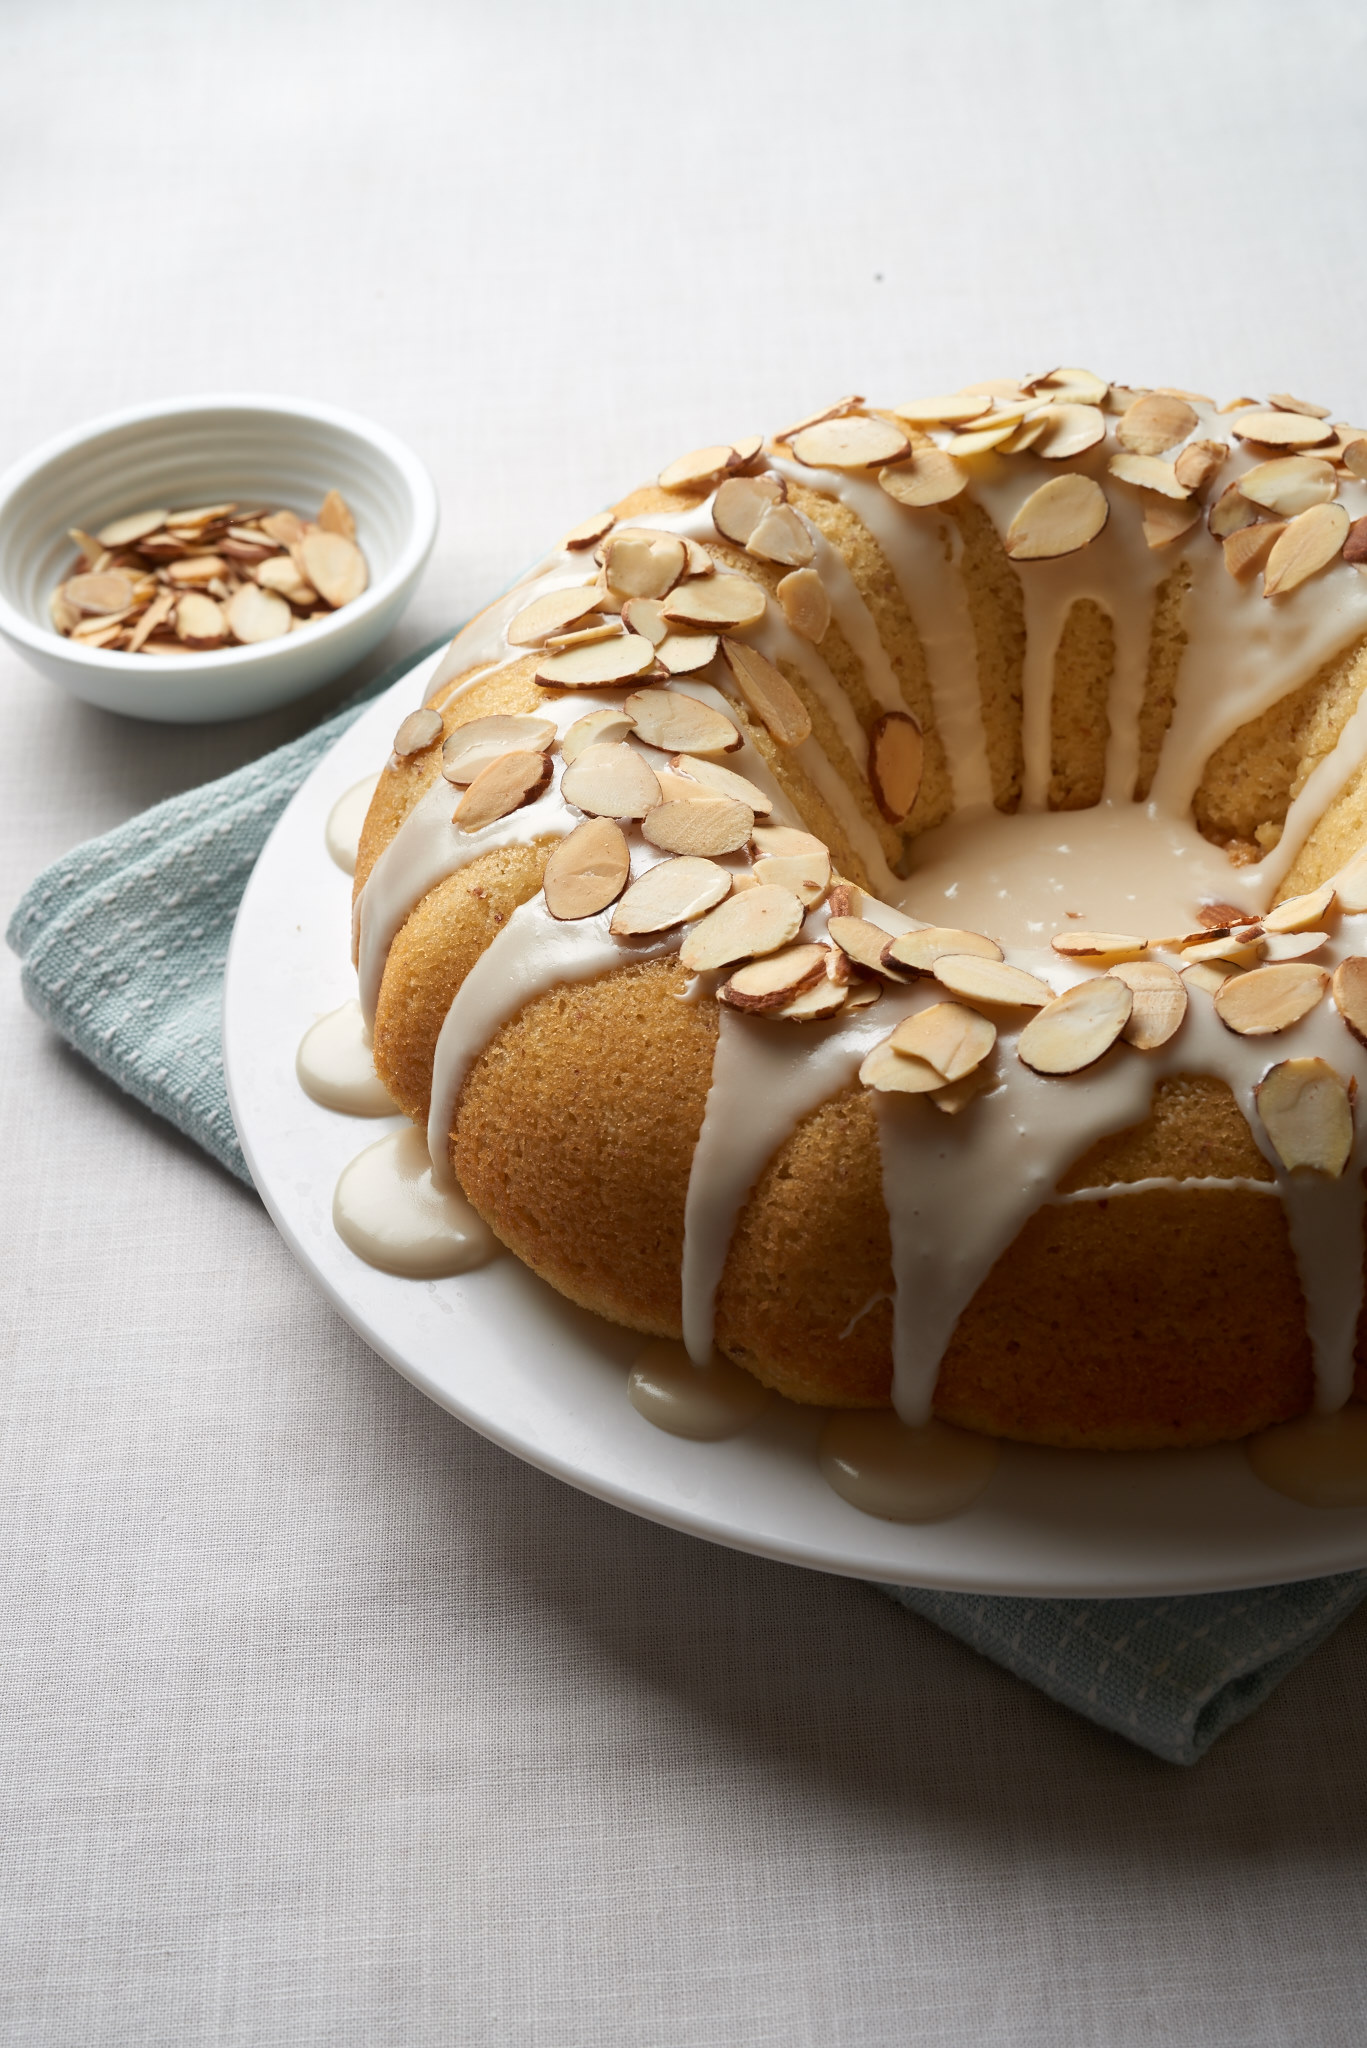 Almond Bundt Cake with an Amaretto glaze. | ibakeheshoots.com